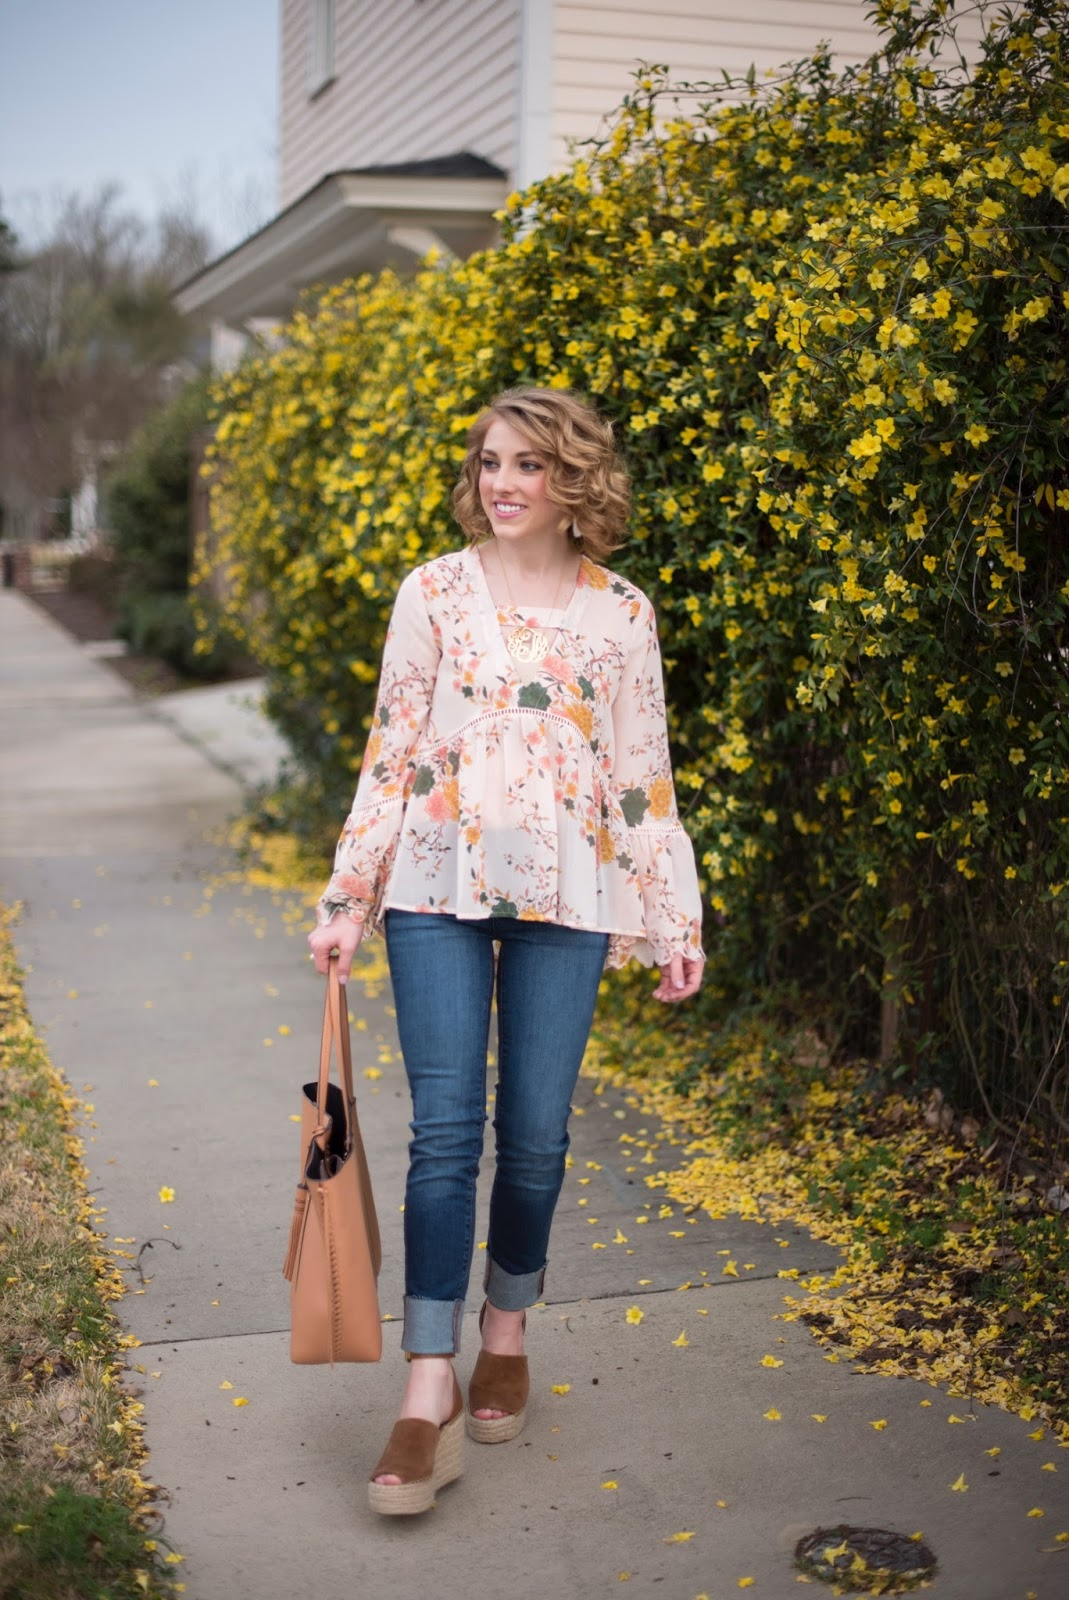 Spring Fashion - Something Delightful Blog